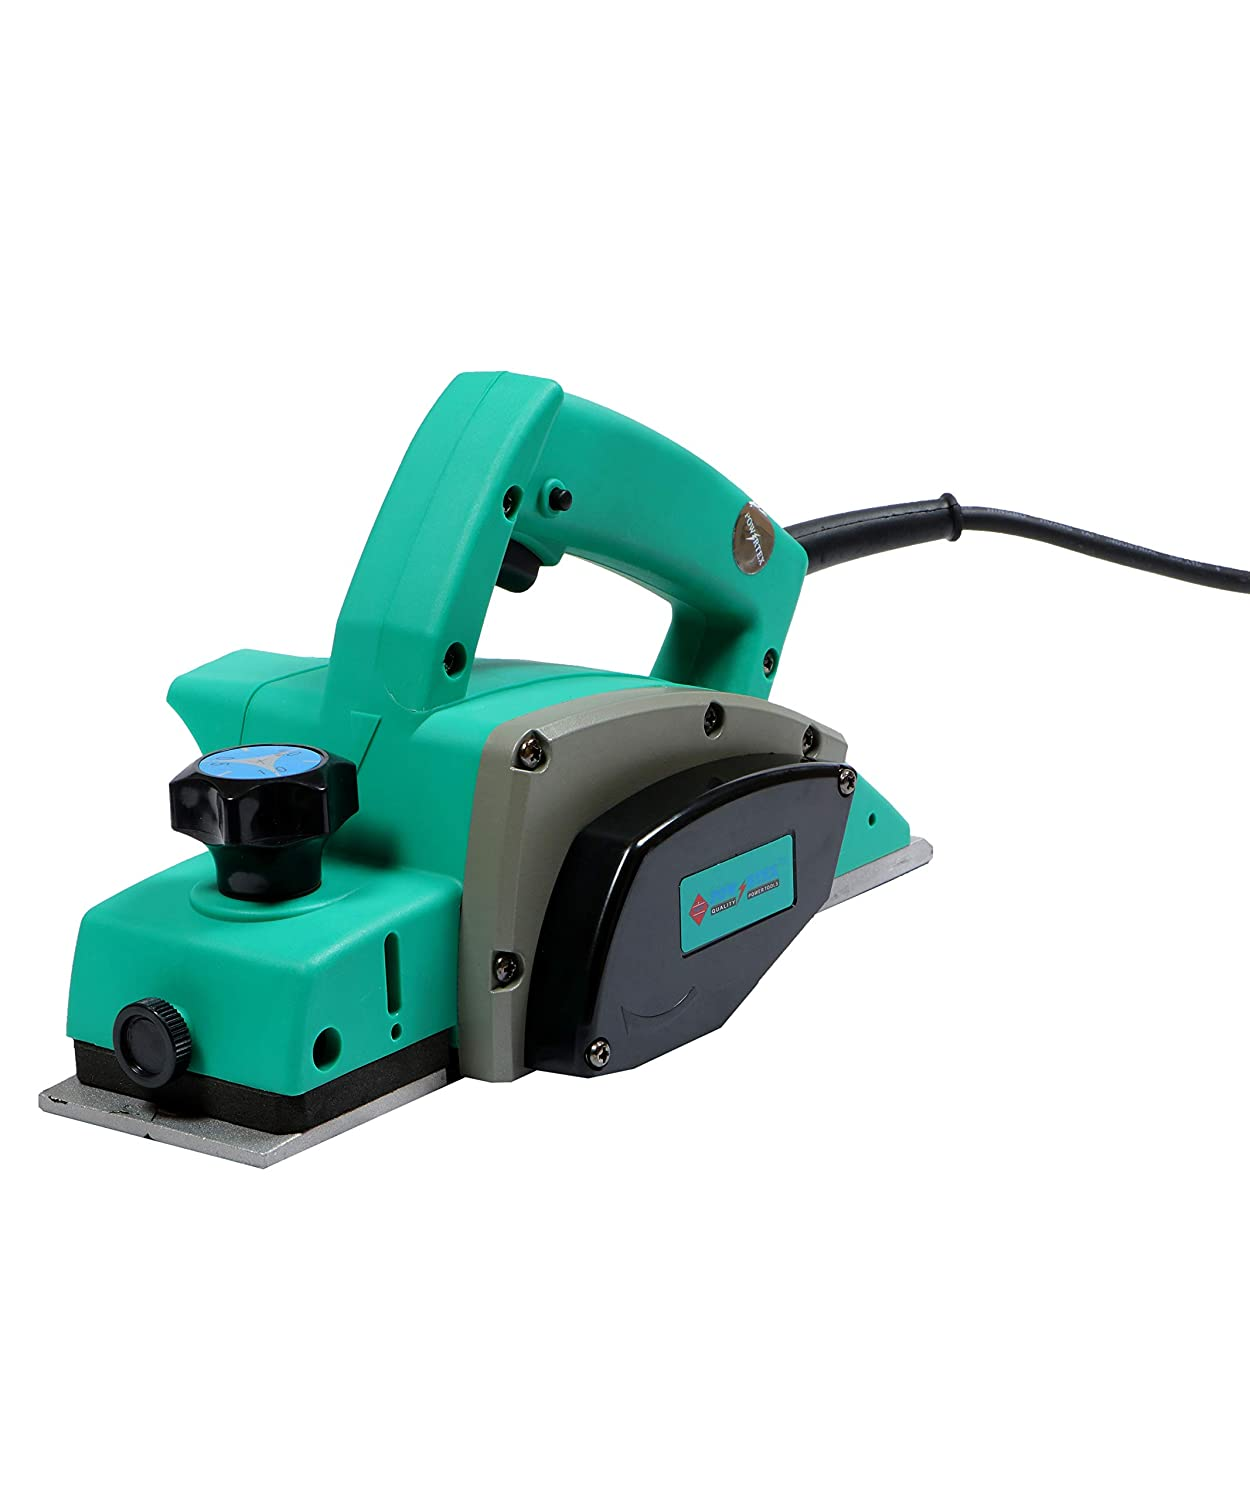 POWERTEX Electric Planer (Green)